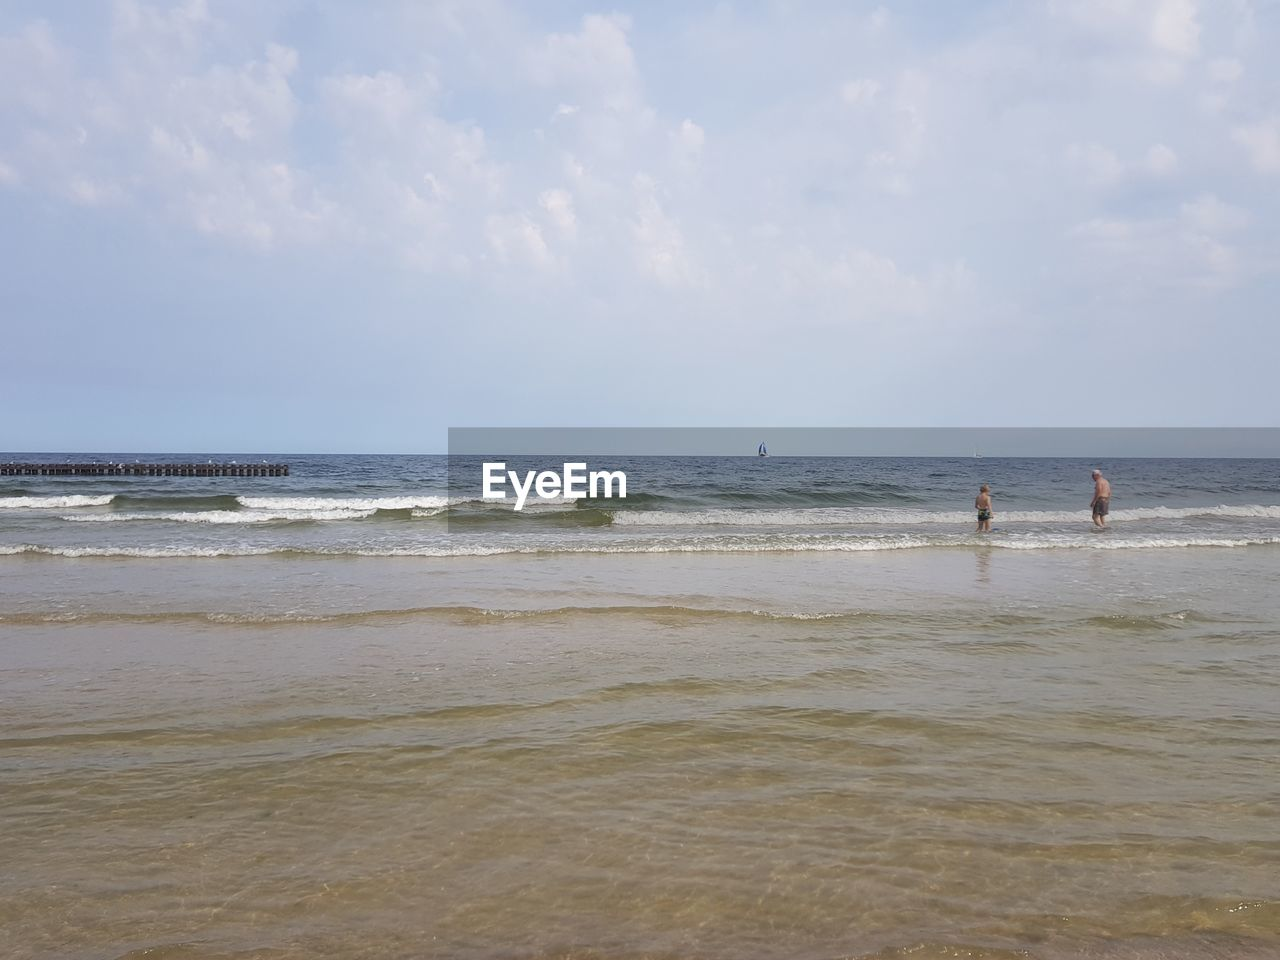 sea, water, sky, land, beach, horizon, horizon over water, beauty in nature, scenics - nature, motion, day, nature, wave, cloud - sky, real people, men, non-urban scene, people, leisure activity, outdoors